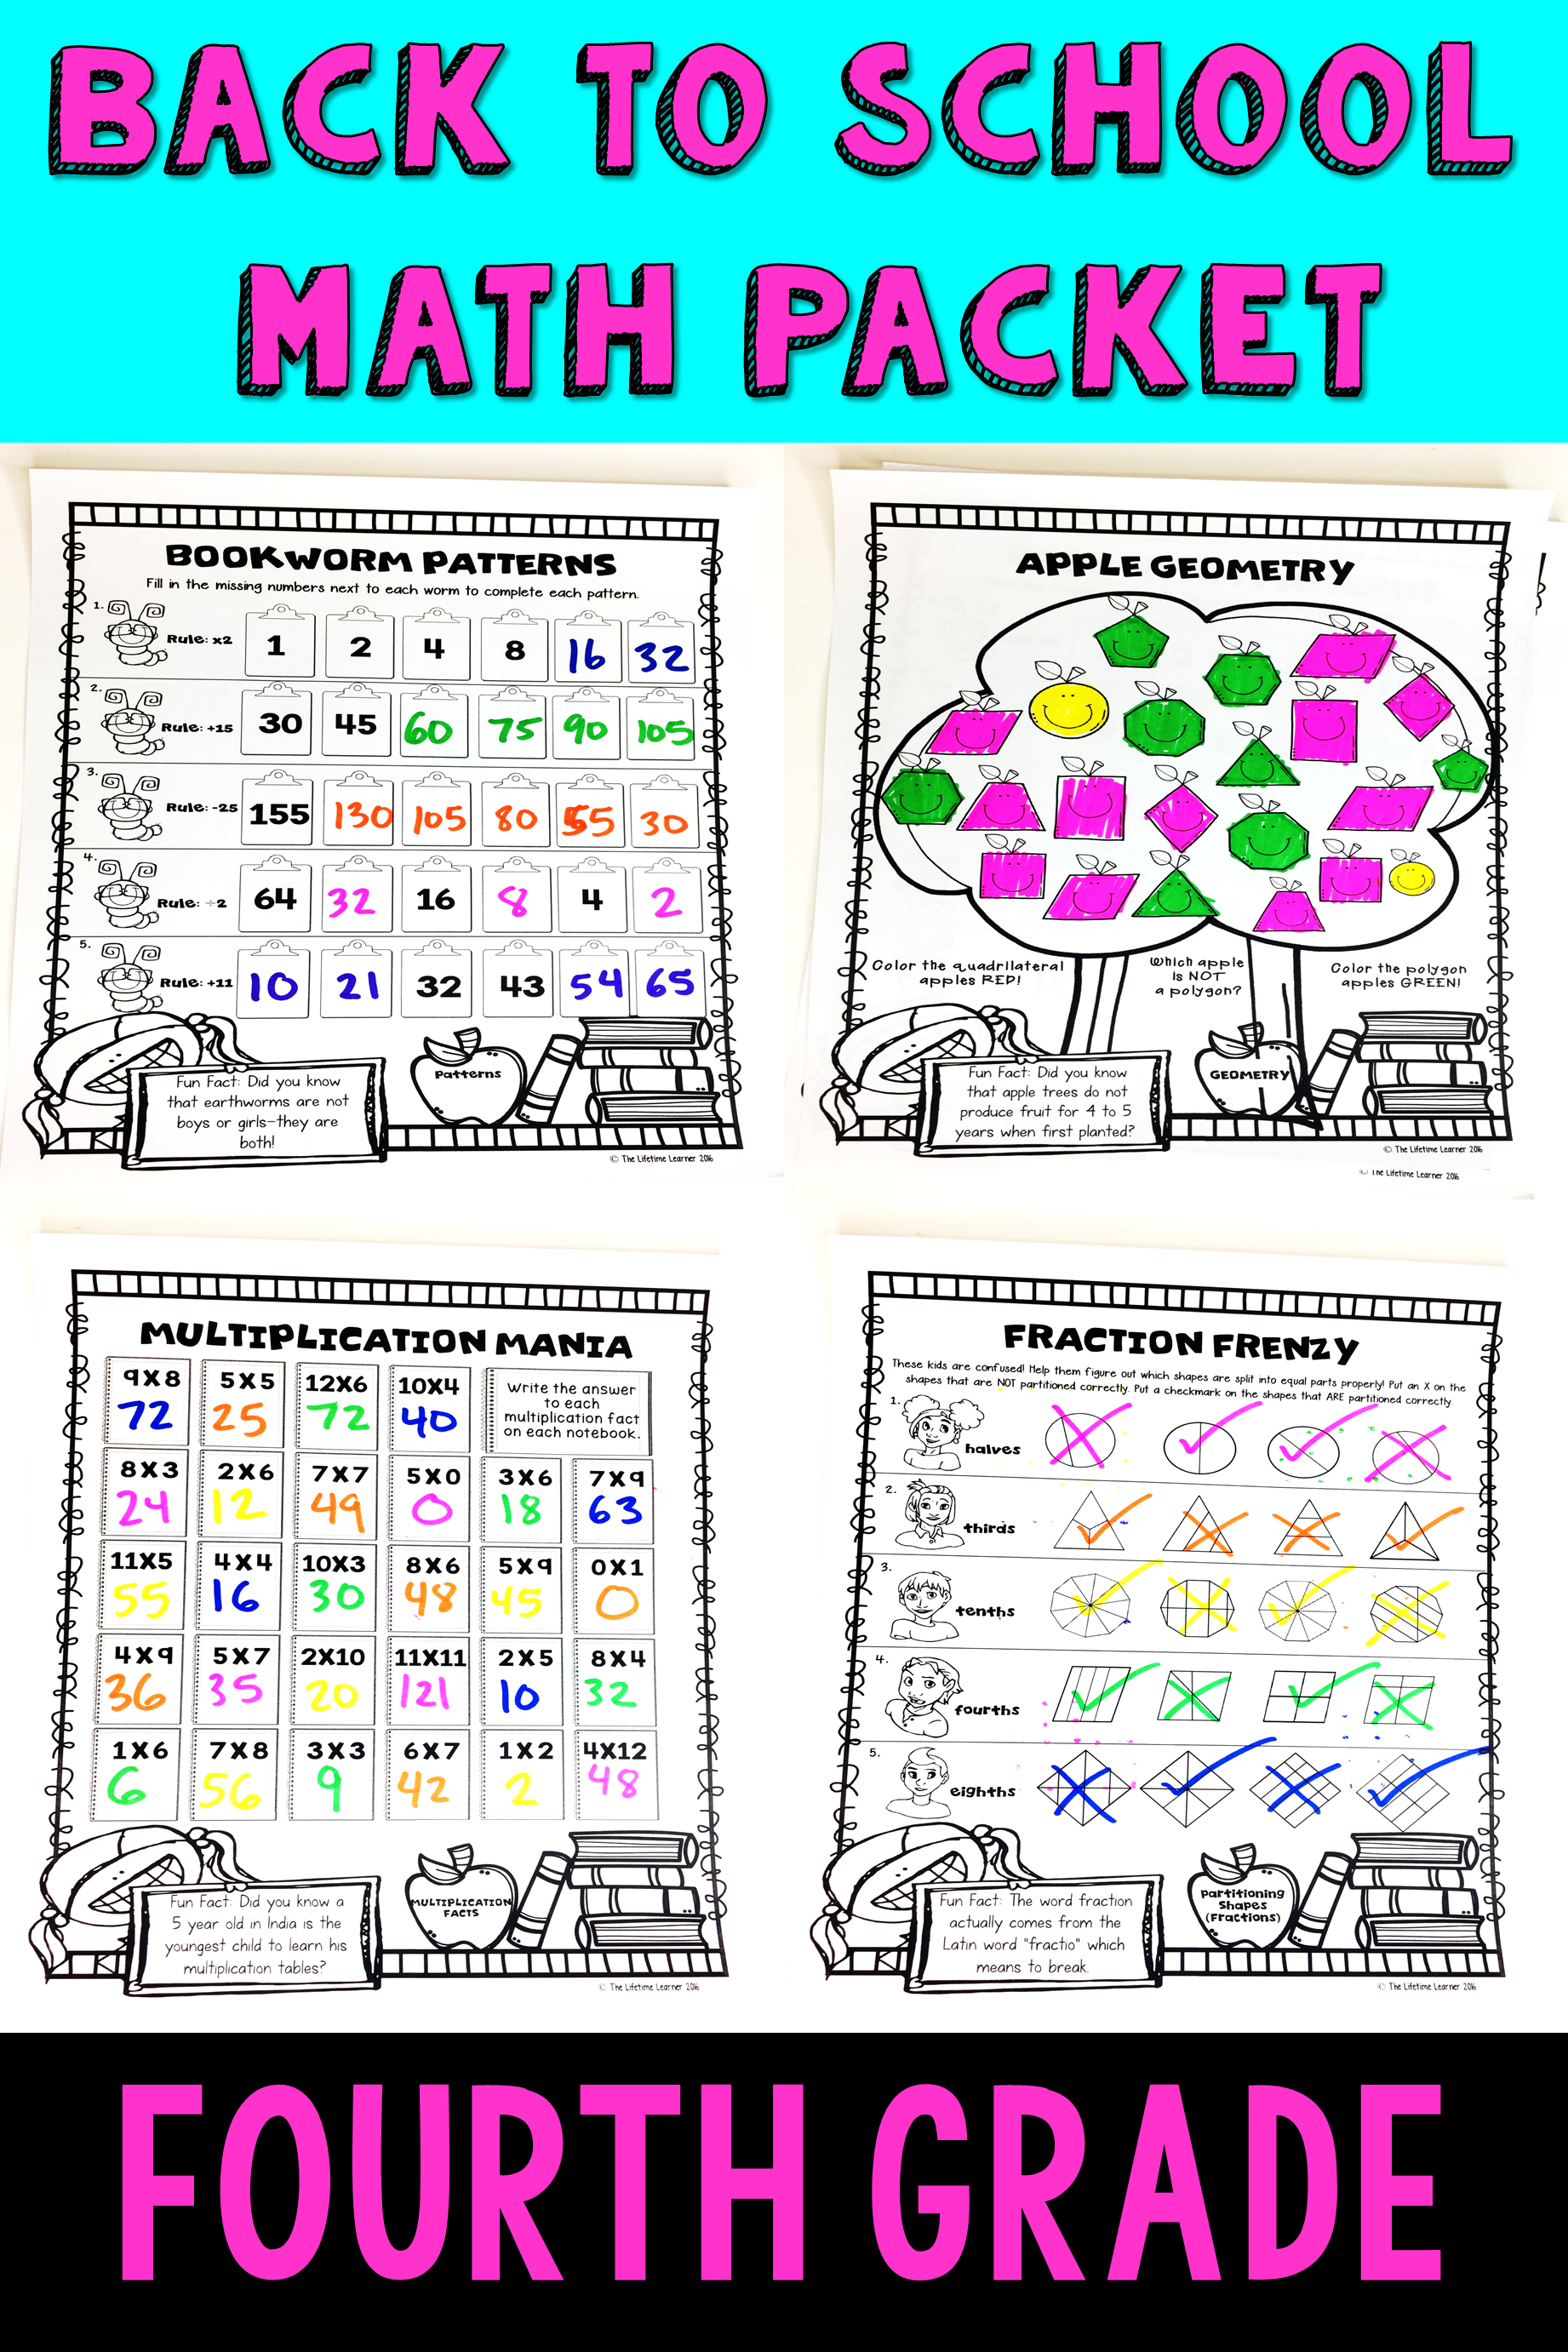 4th Grade Back to School Math Packet | Pinterest